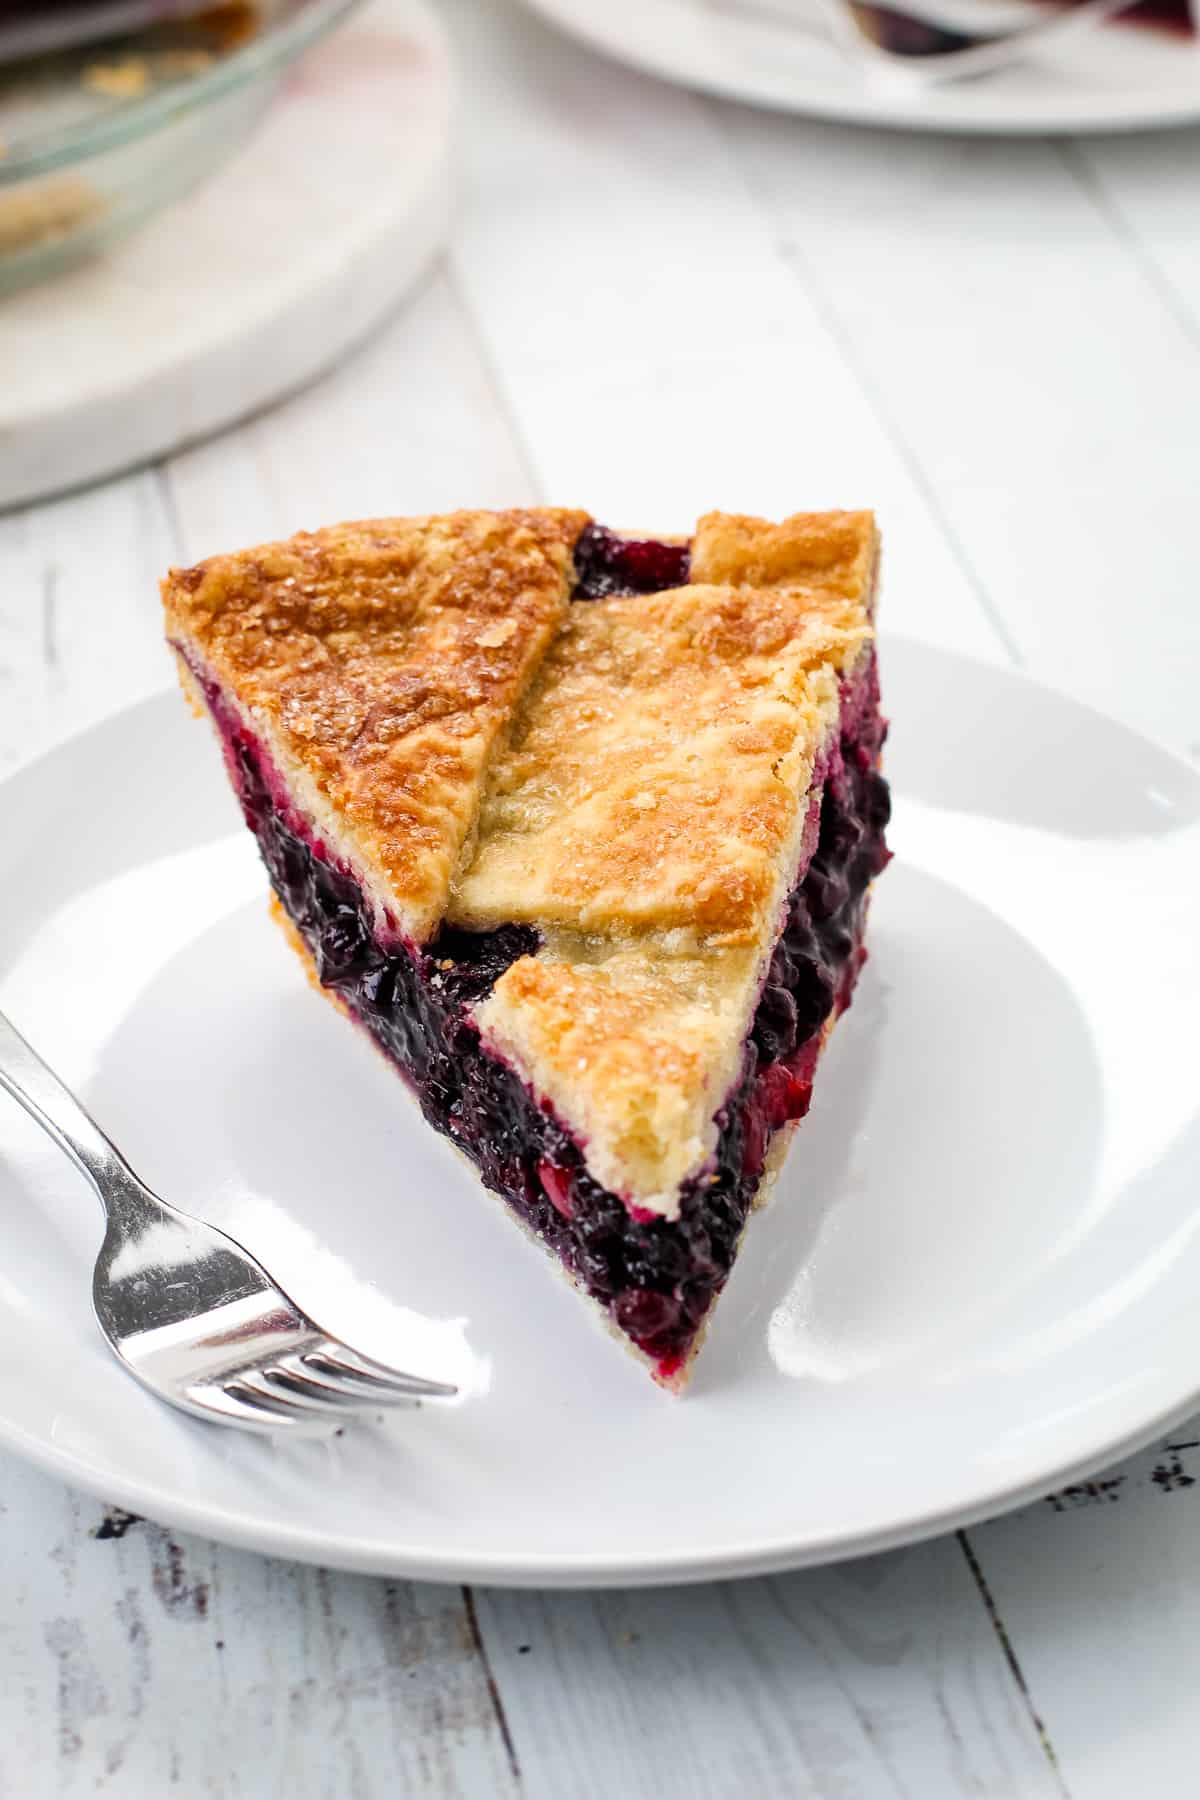 Lattice cranberry blueberry pie